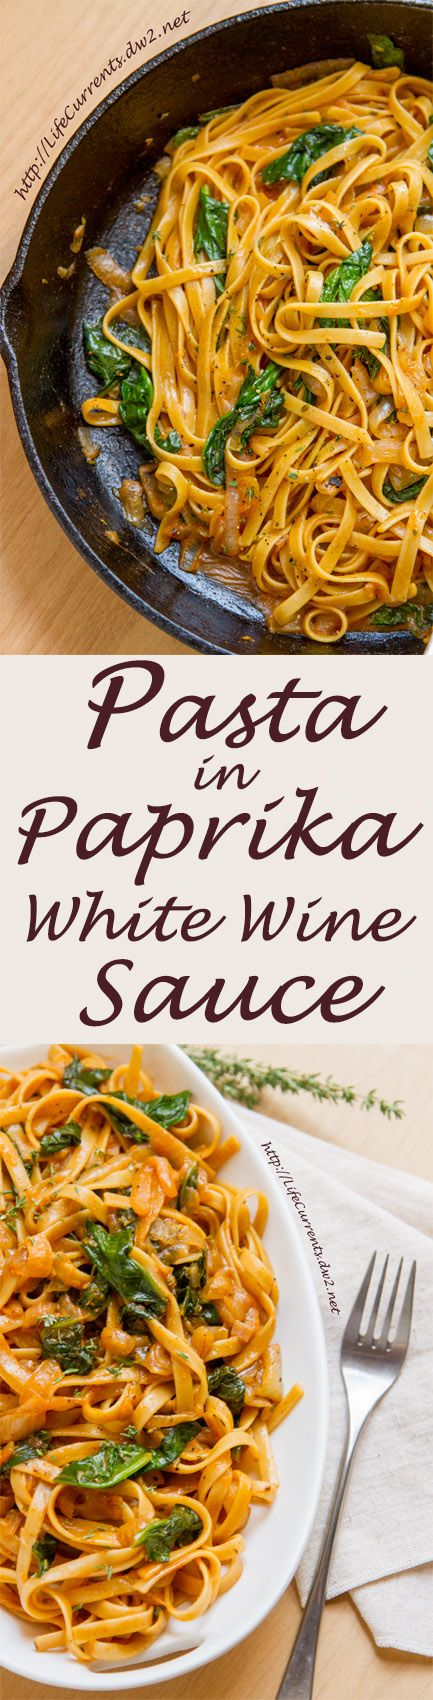 Pasta in Paprika White Wine Sauce is a great romantic vegetarian dinner